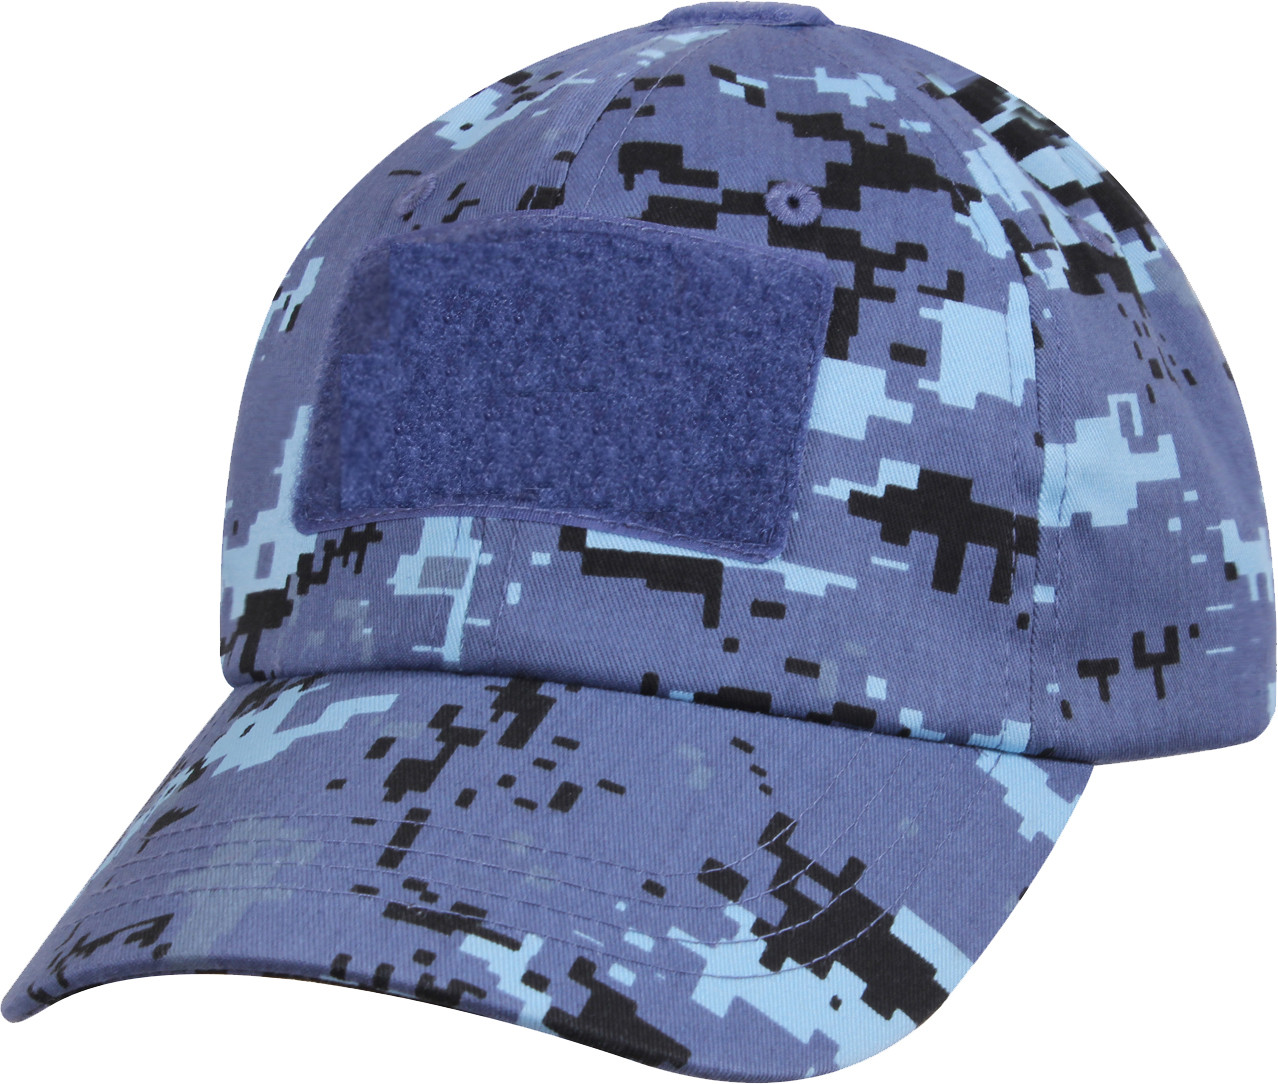 More Views. Sky Blue Digital Camouflage Tactical Military Baseball Operator  Cap 5436664718b